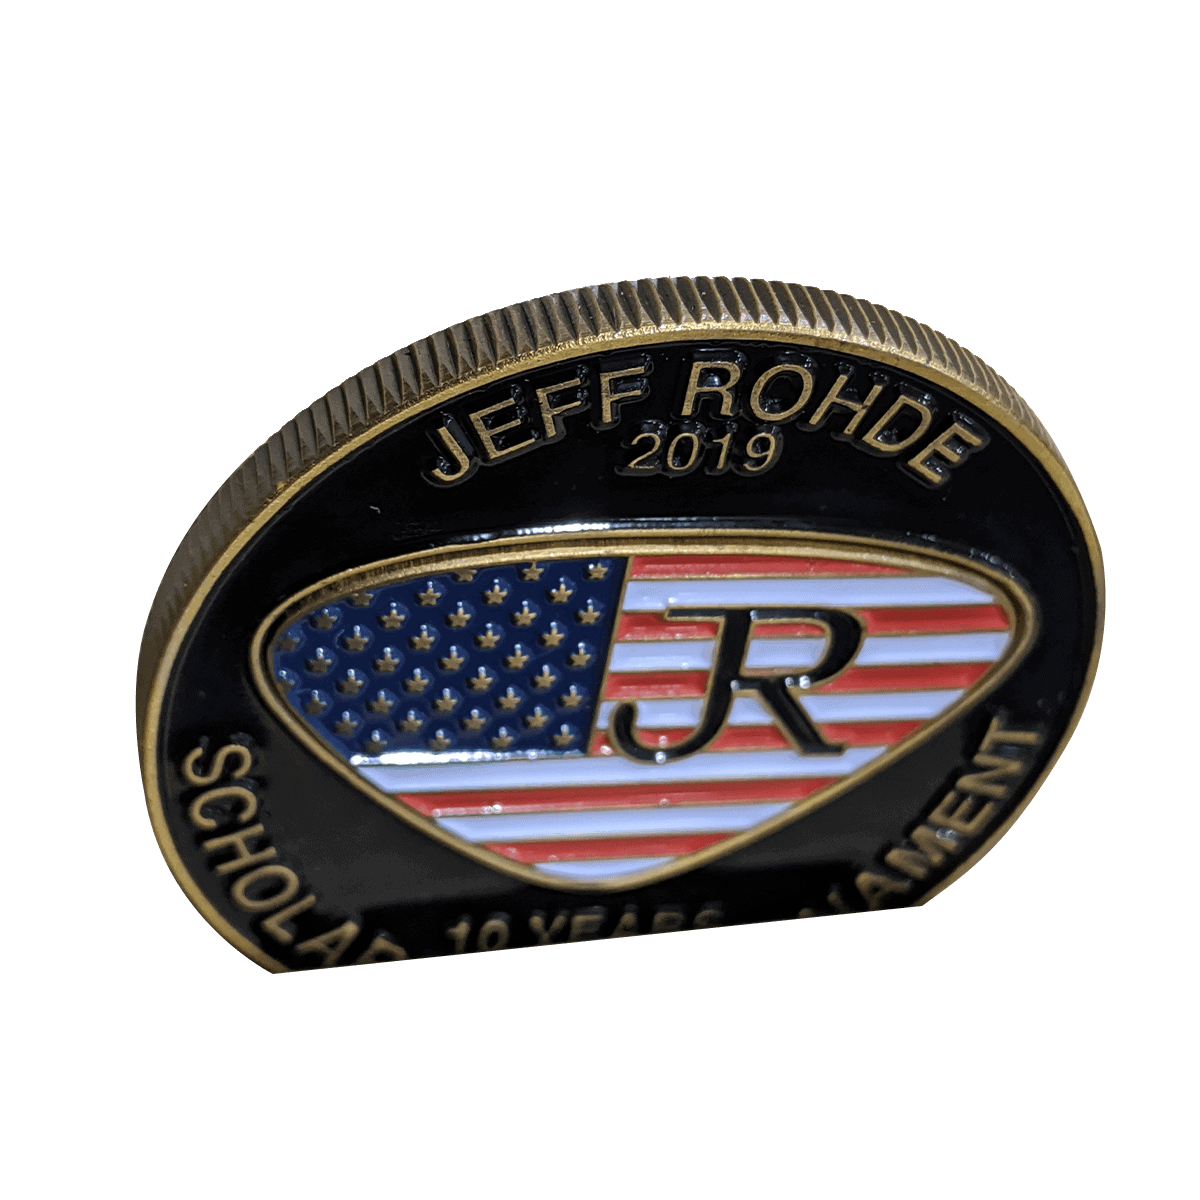 Challenge Coin Reeded Edge